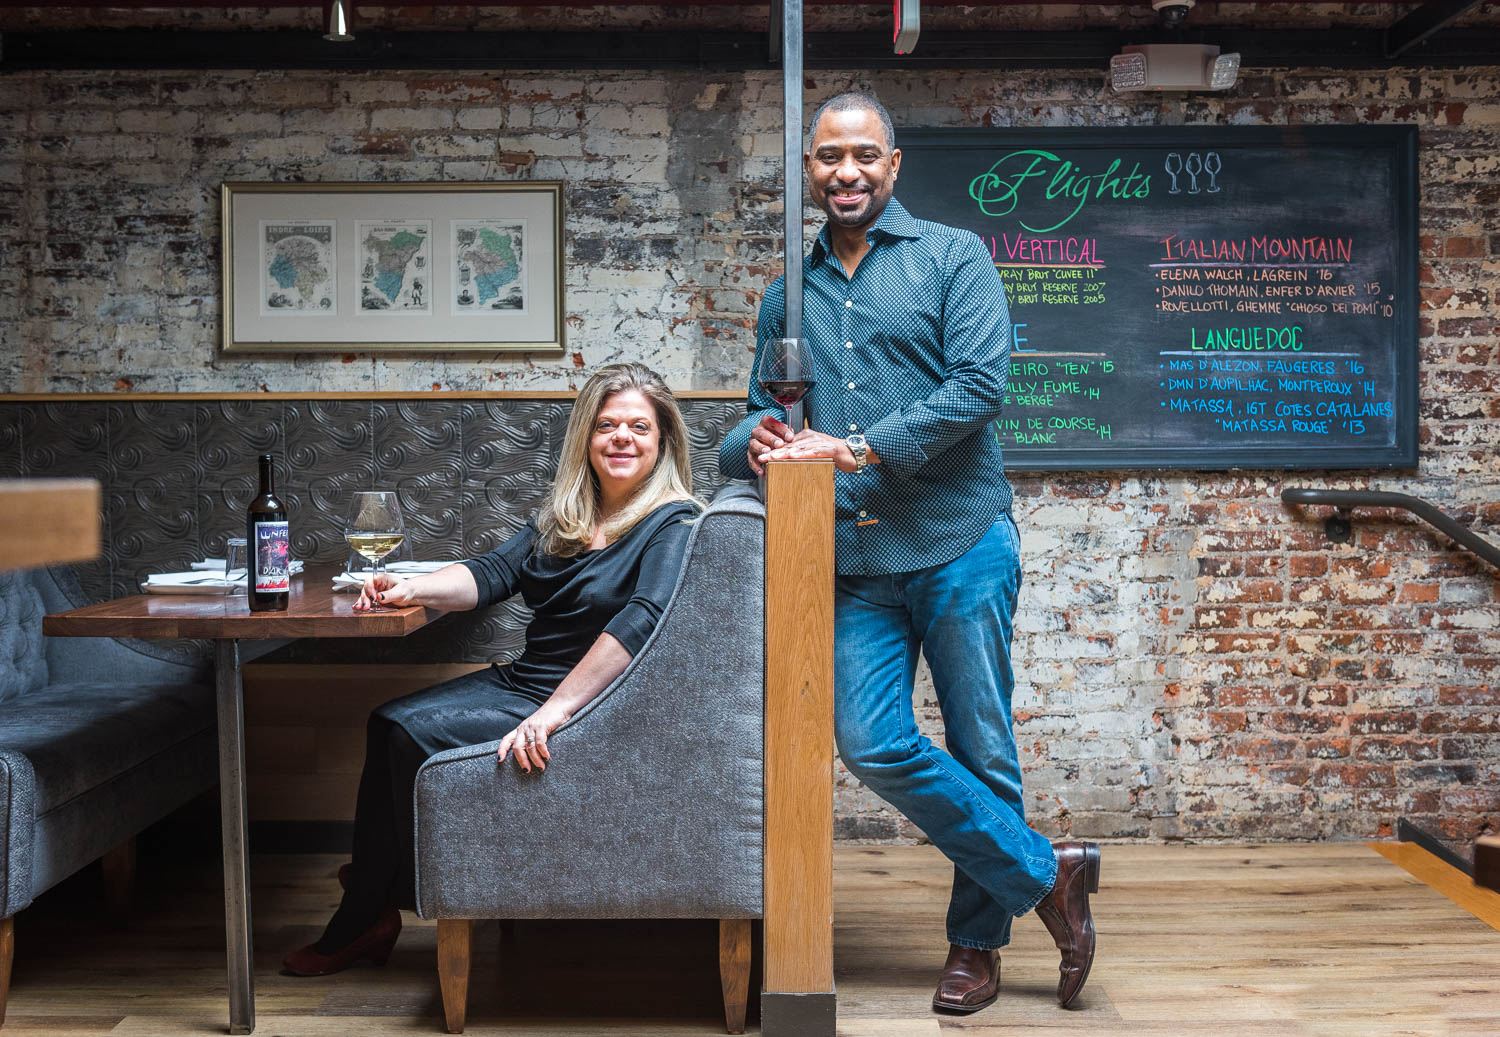 Cork Market & Wine Bar co-owners Diane Gross and Khalid Pitts at their new location at 1805 14th Street NW.